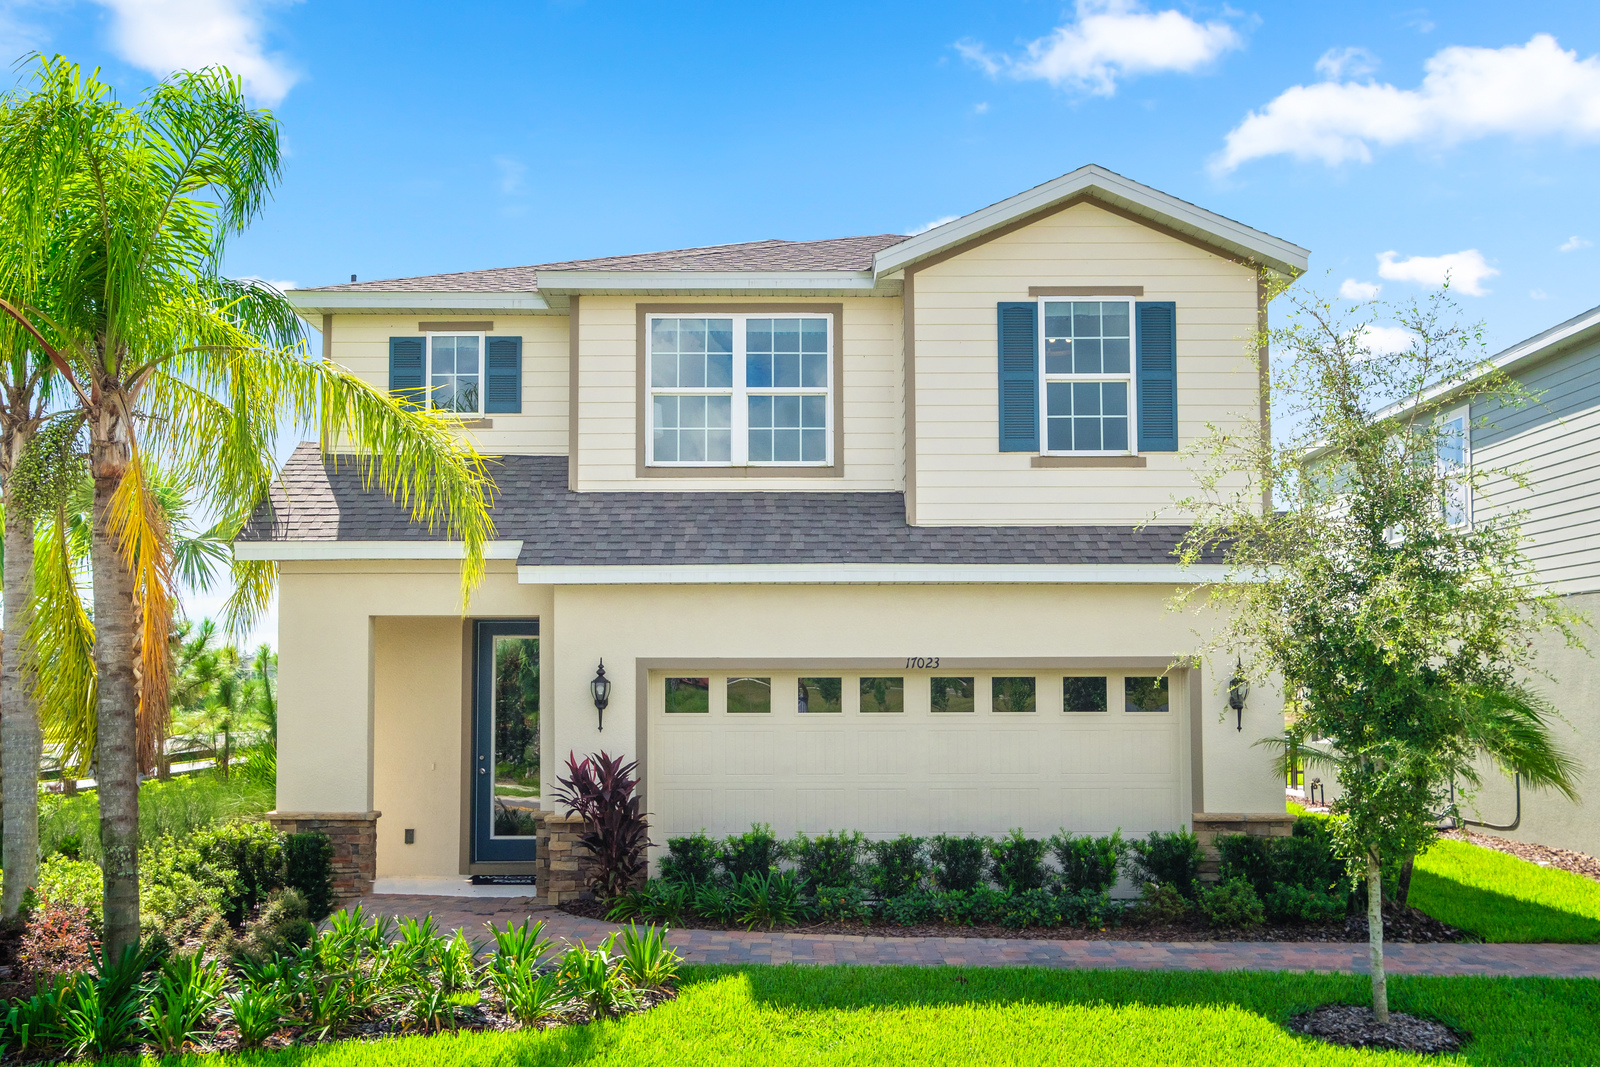 Magnificent New Doral Home Model For Sale At Serenoa In Clermont Fl Download Free Architecture Designs Intelgarnamadebymaigaardcom